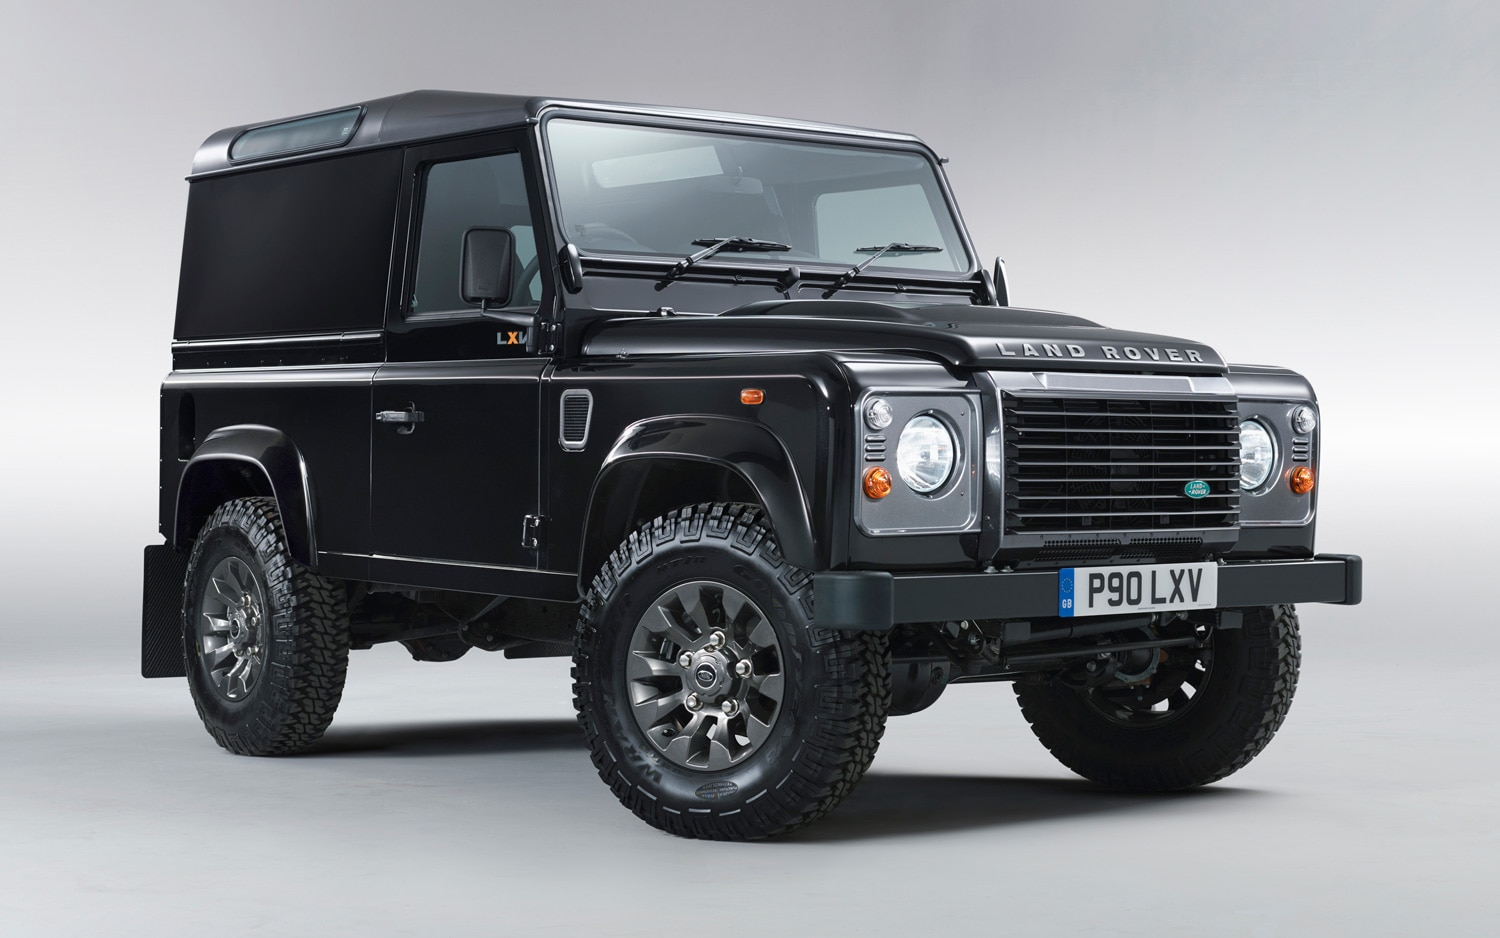 2013 Land Rover Defender 90 LXV Special Edition Front Three Quarters View1